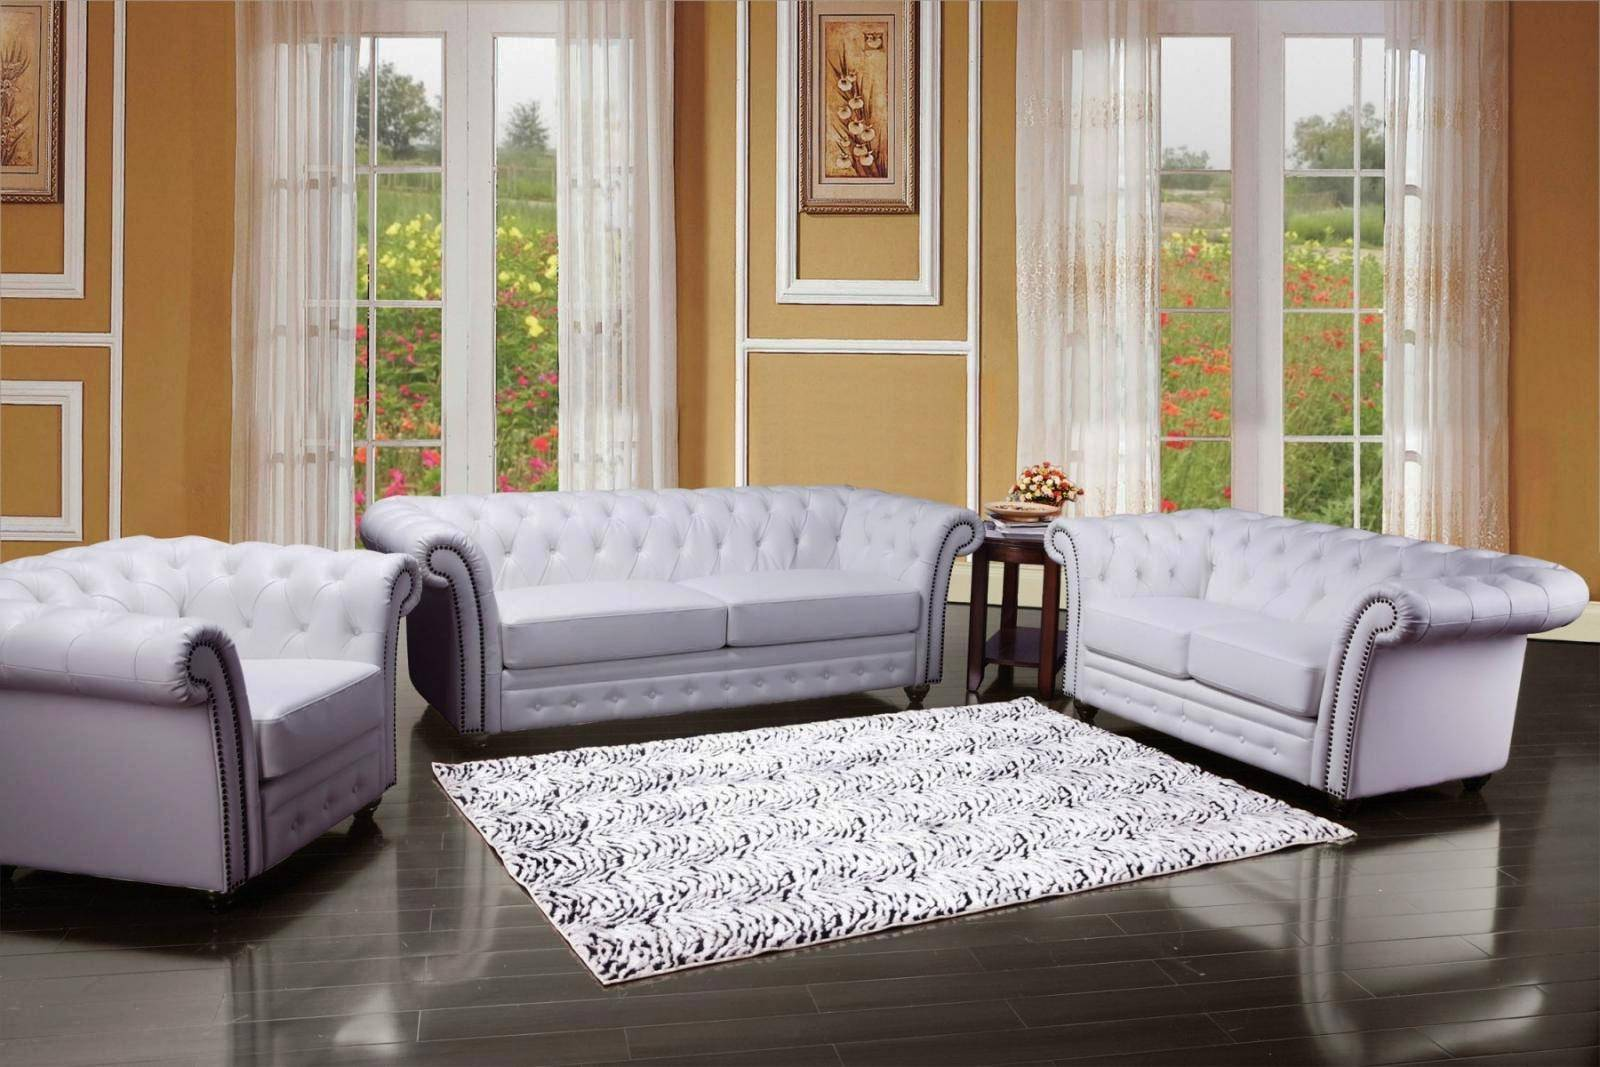 Pleasant Acme 50165 Camden White Bonded Leather Deep Tufted Sofa Set Forskolin Free Trial Chair Design Images Forskolin Free Trialorg